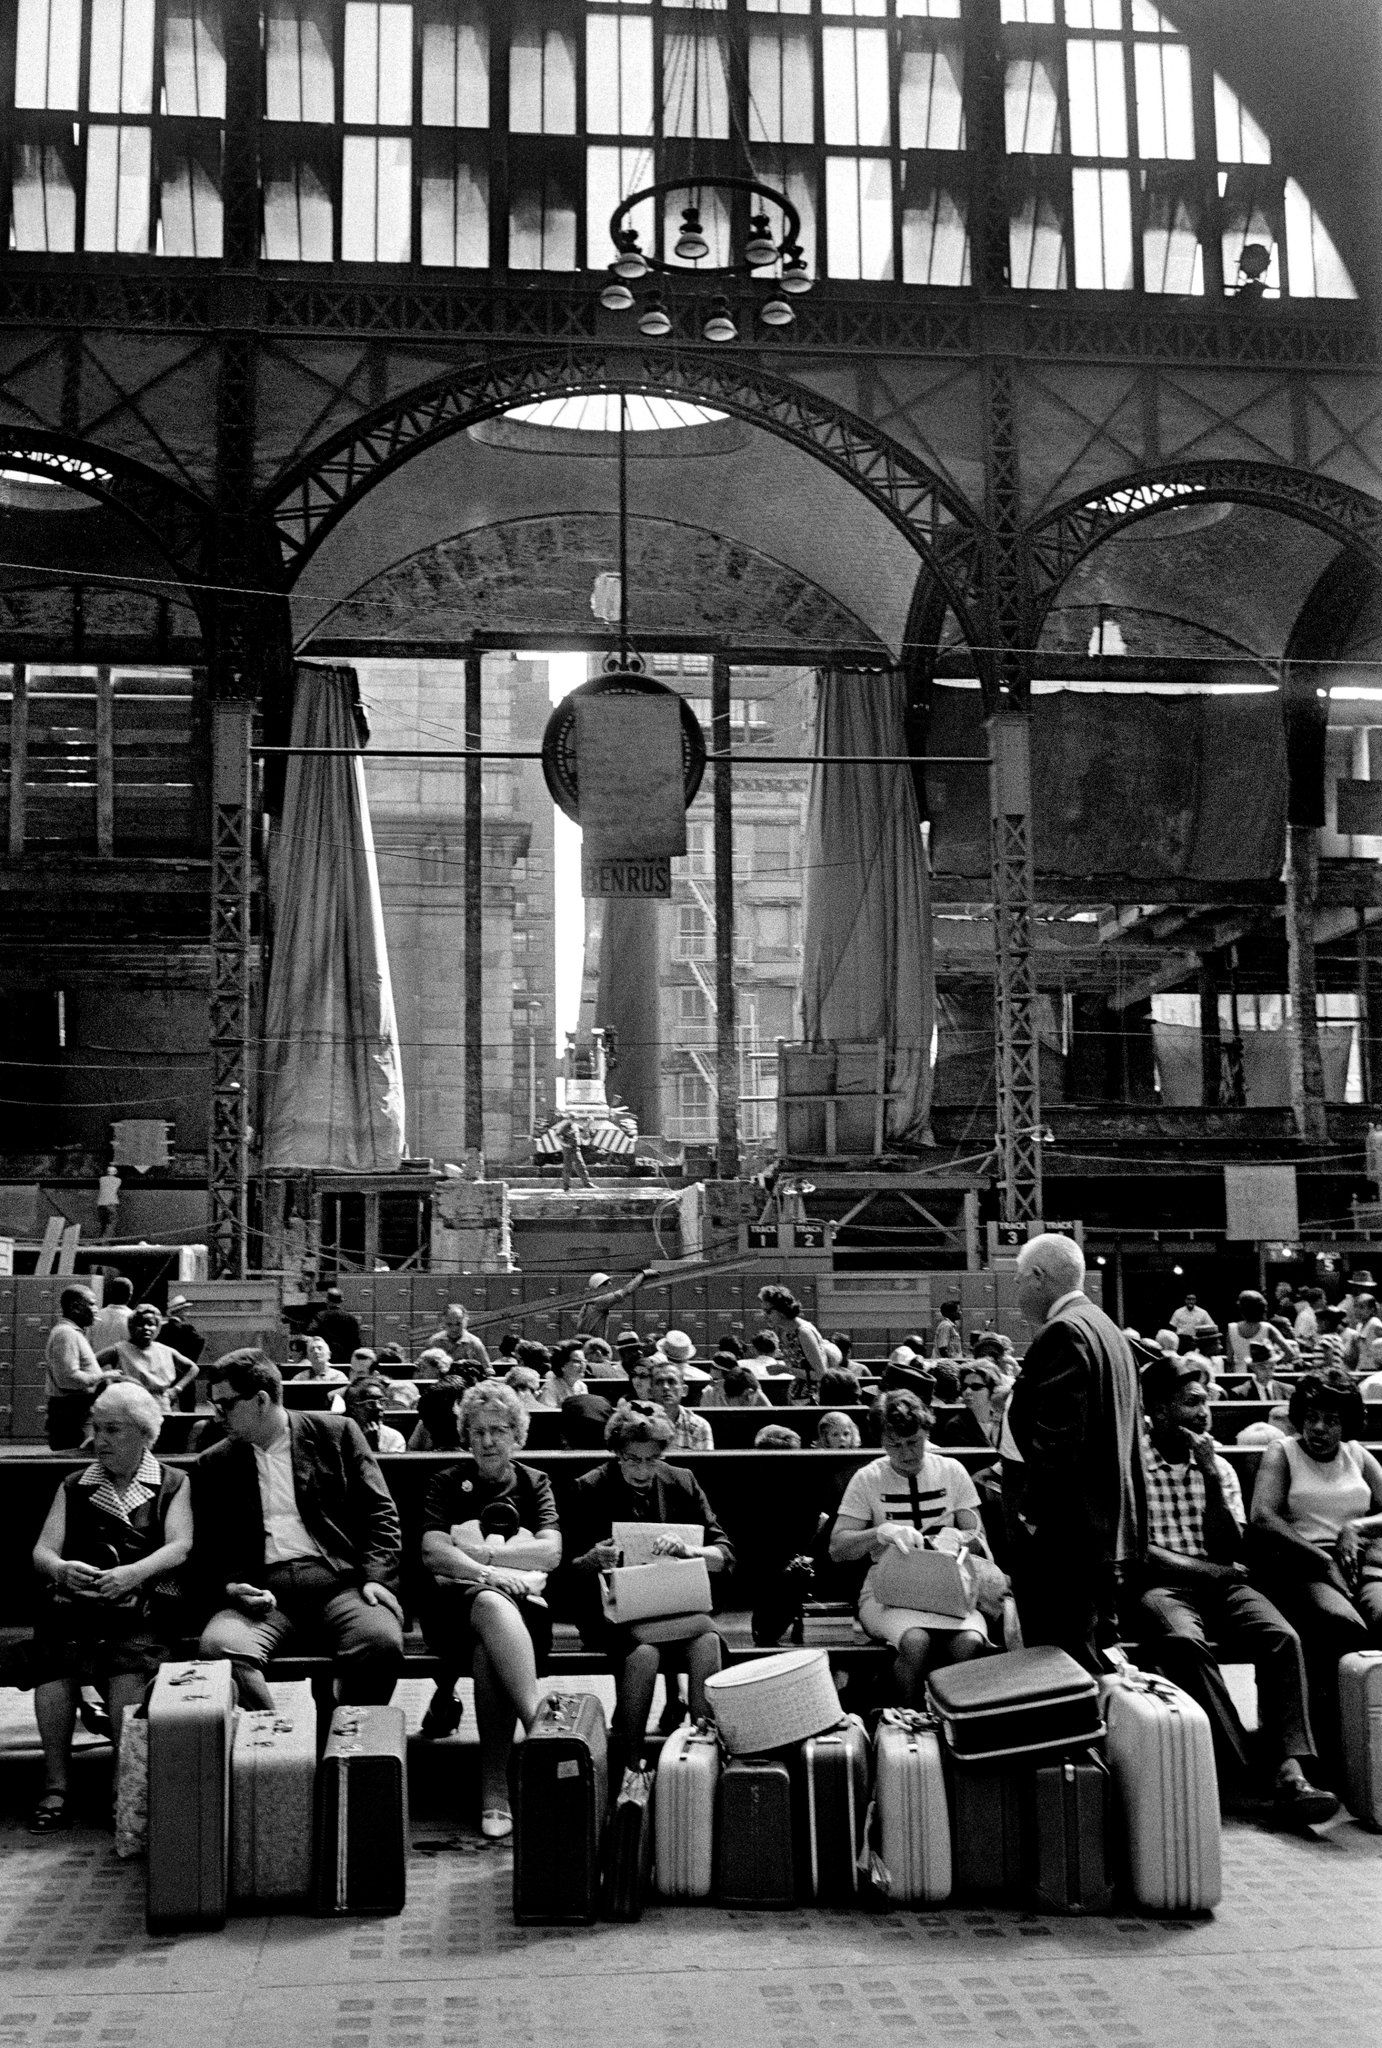 When The Old Penn Station Was Demolished New York Lost Its Faith